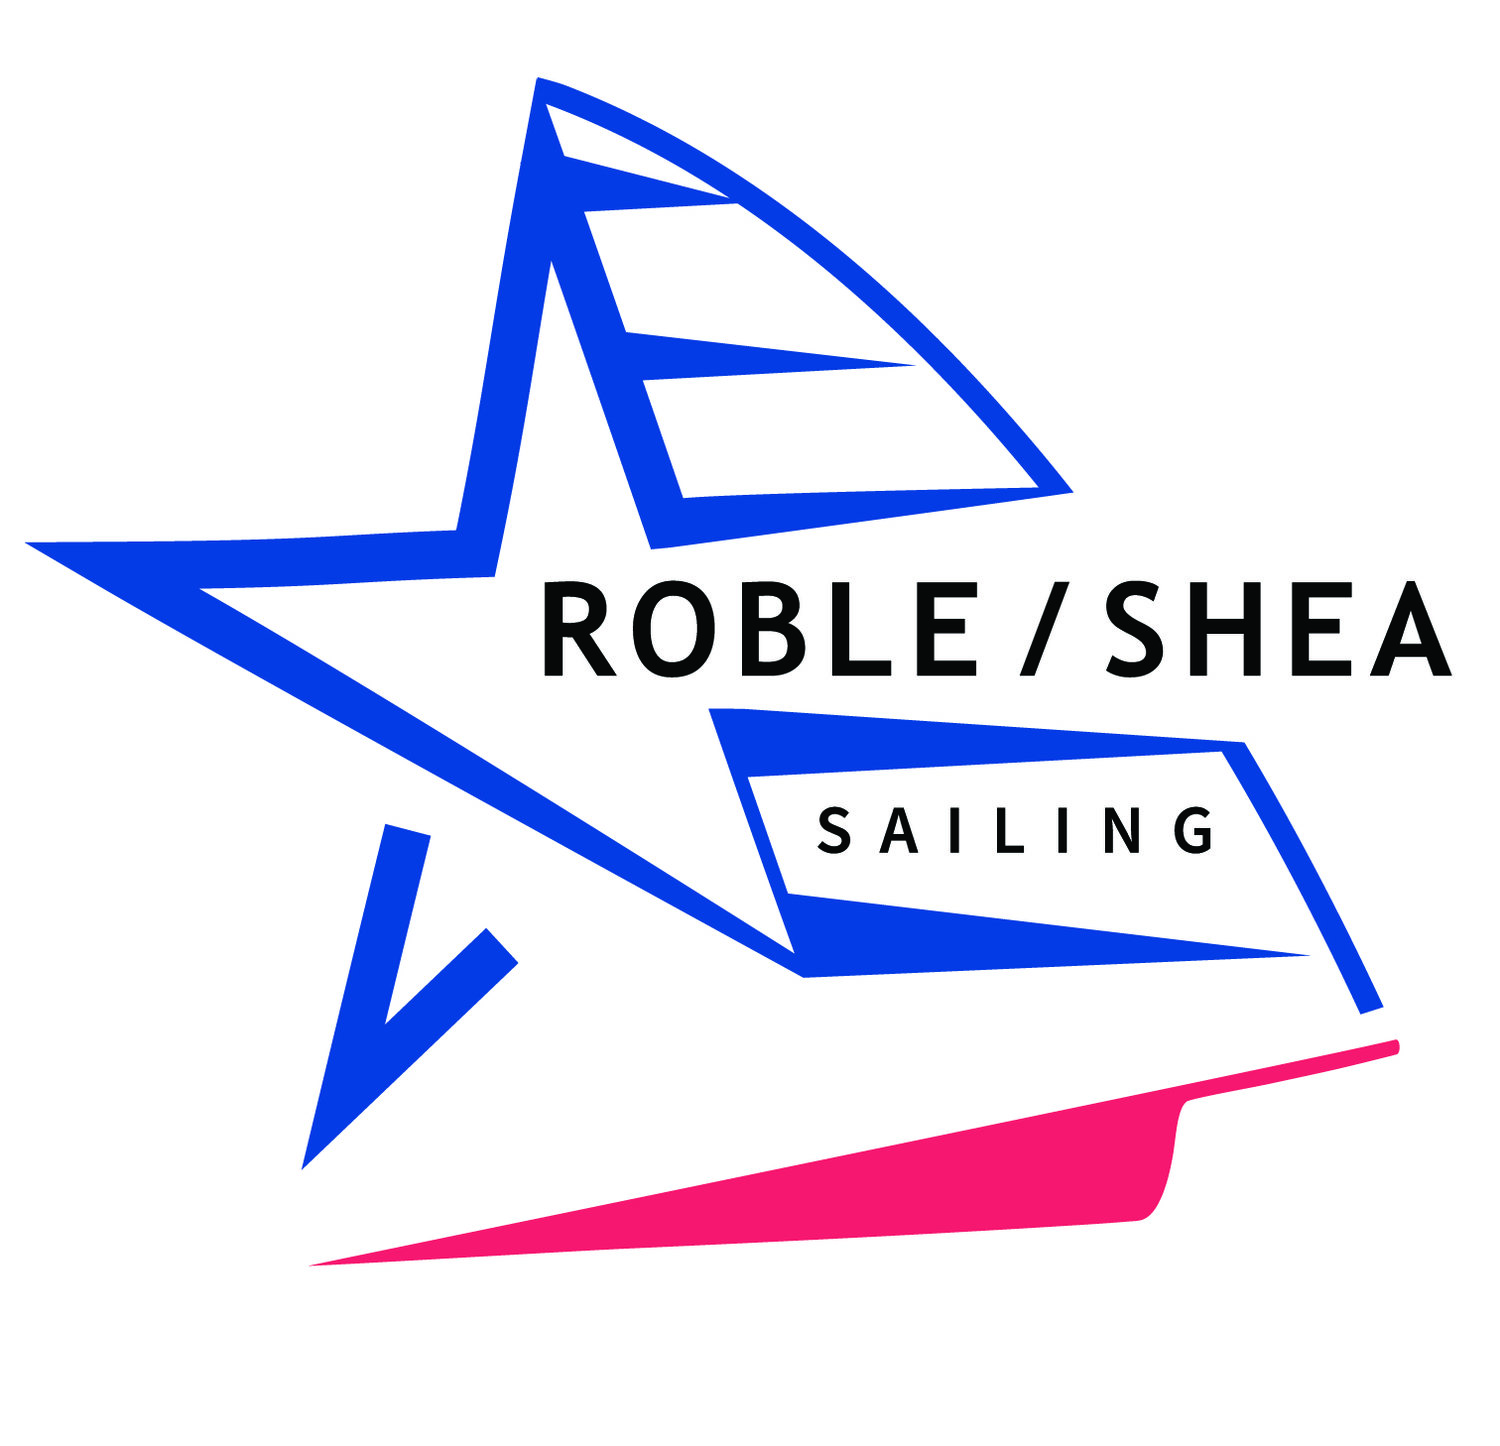 Roble/Shea Sailing